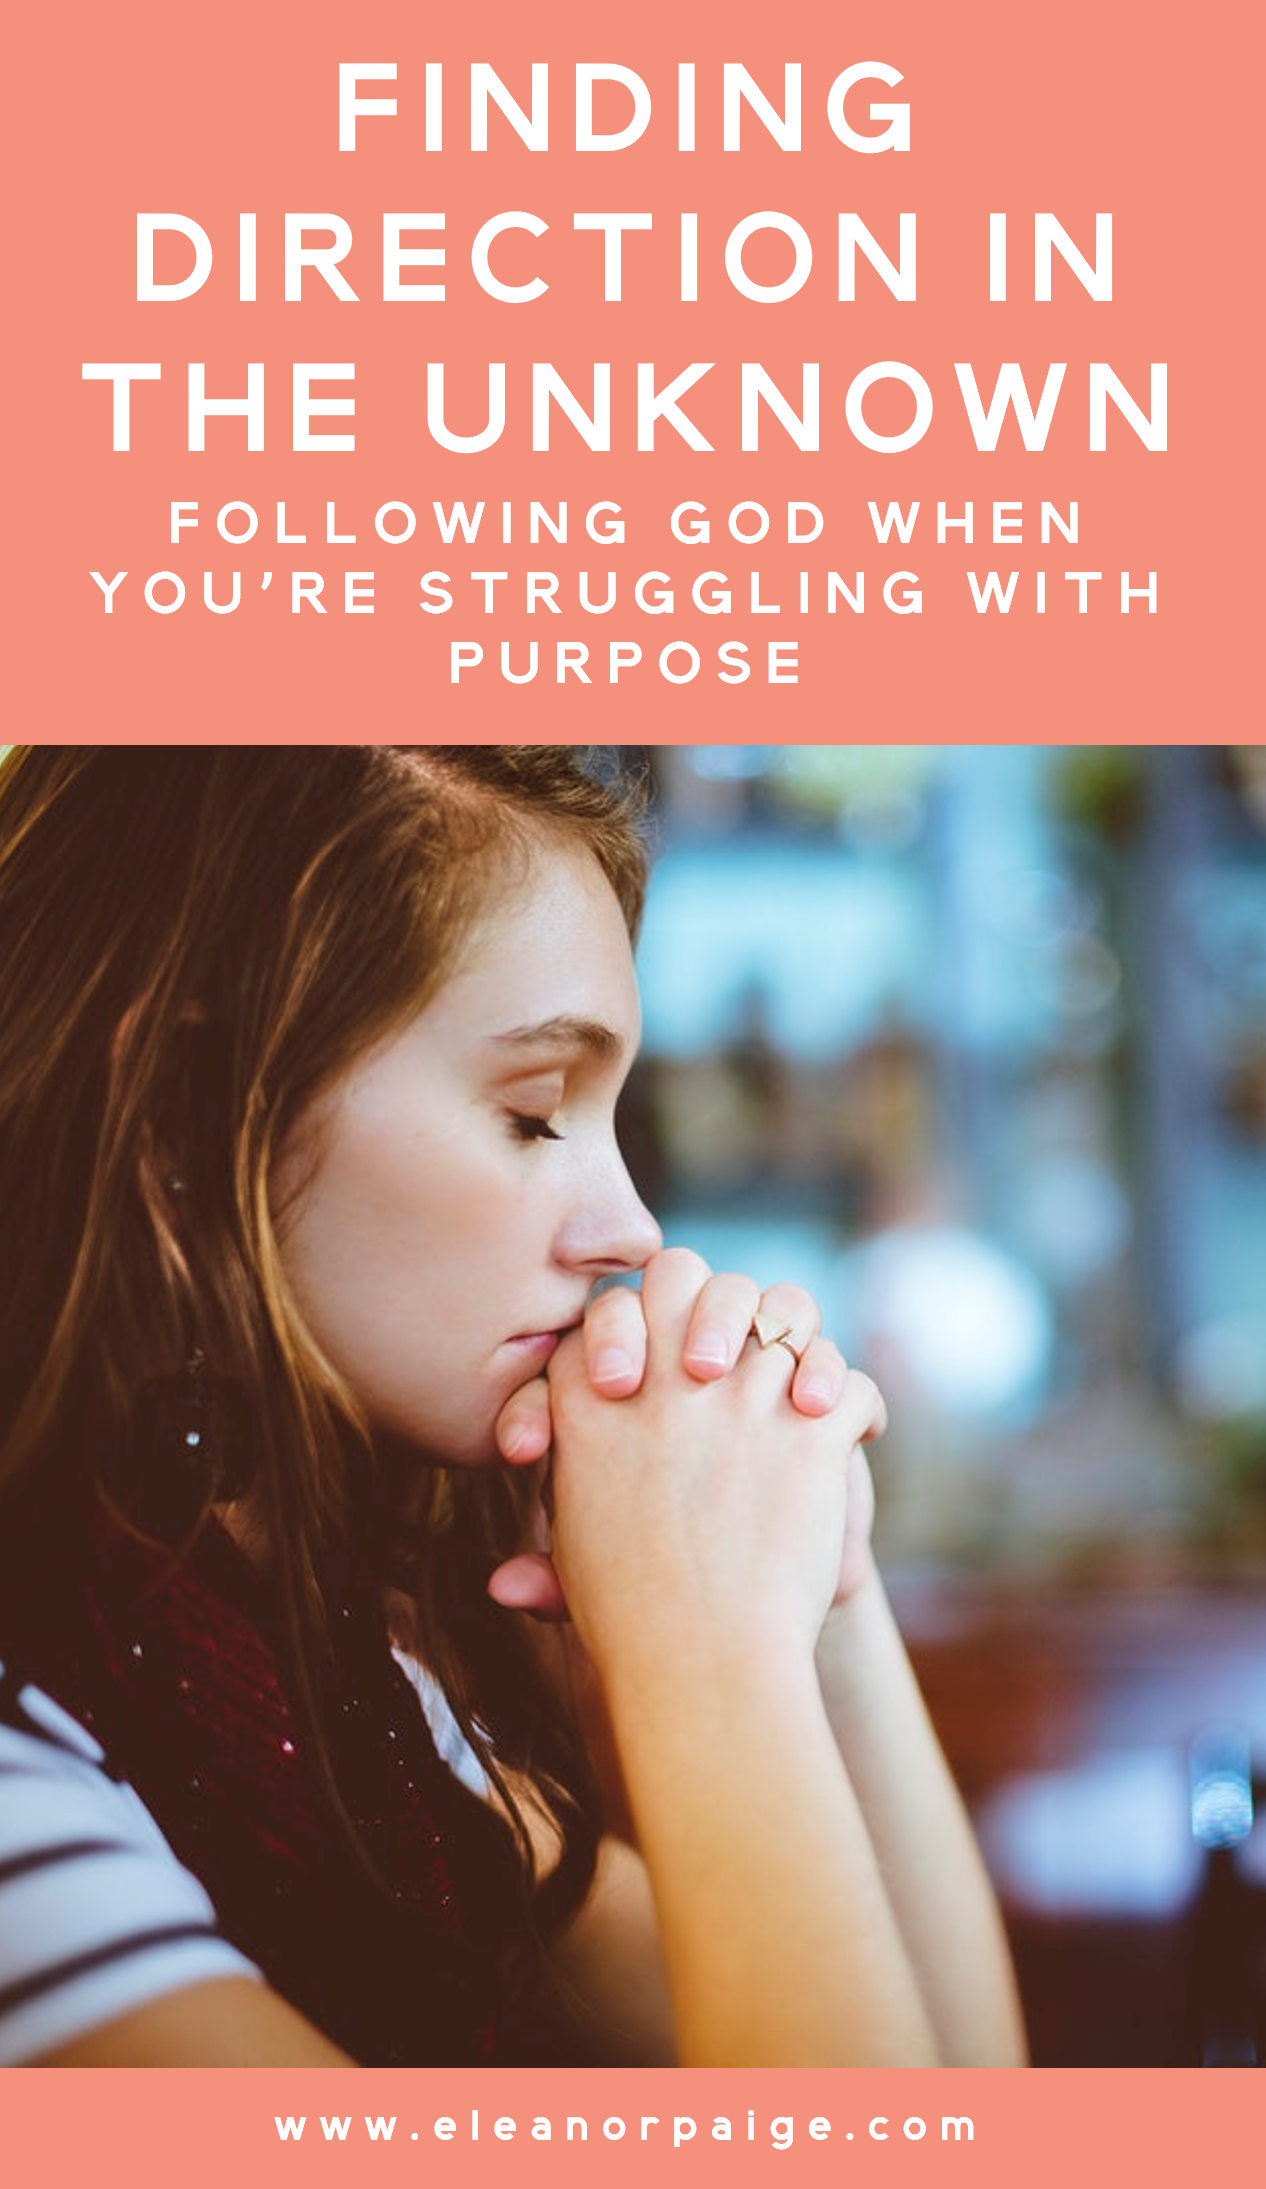 Finding Direction in the Unknown. Following God Whe You're Struggling with Purpose